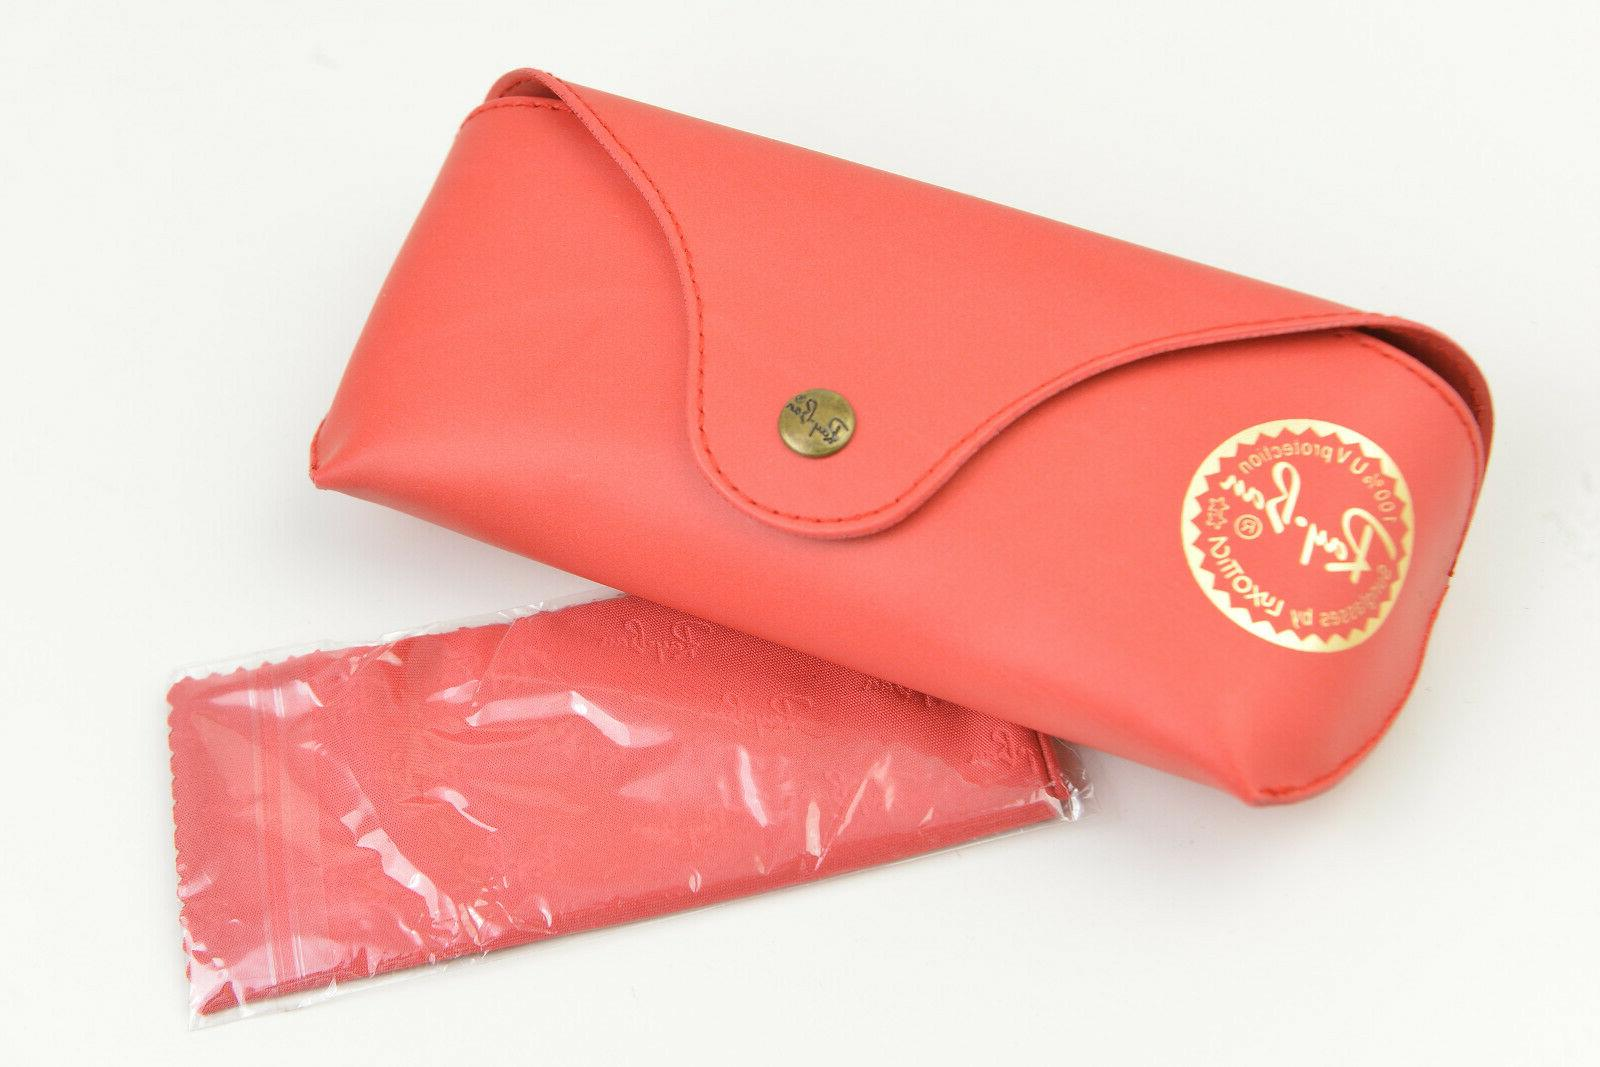 new authentic ray ban leather cases red